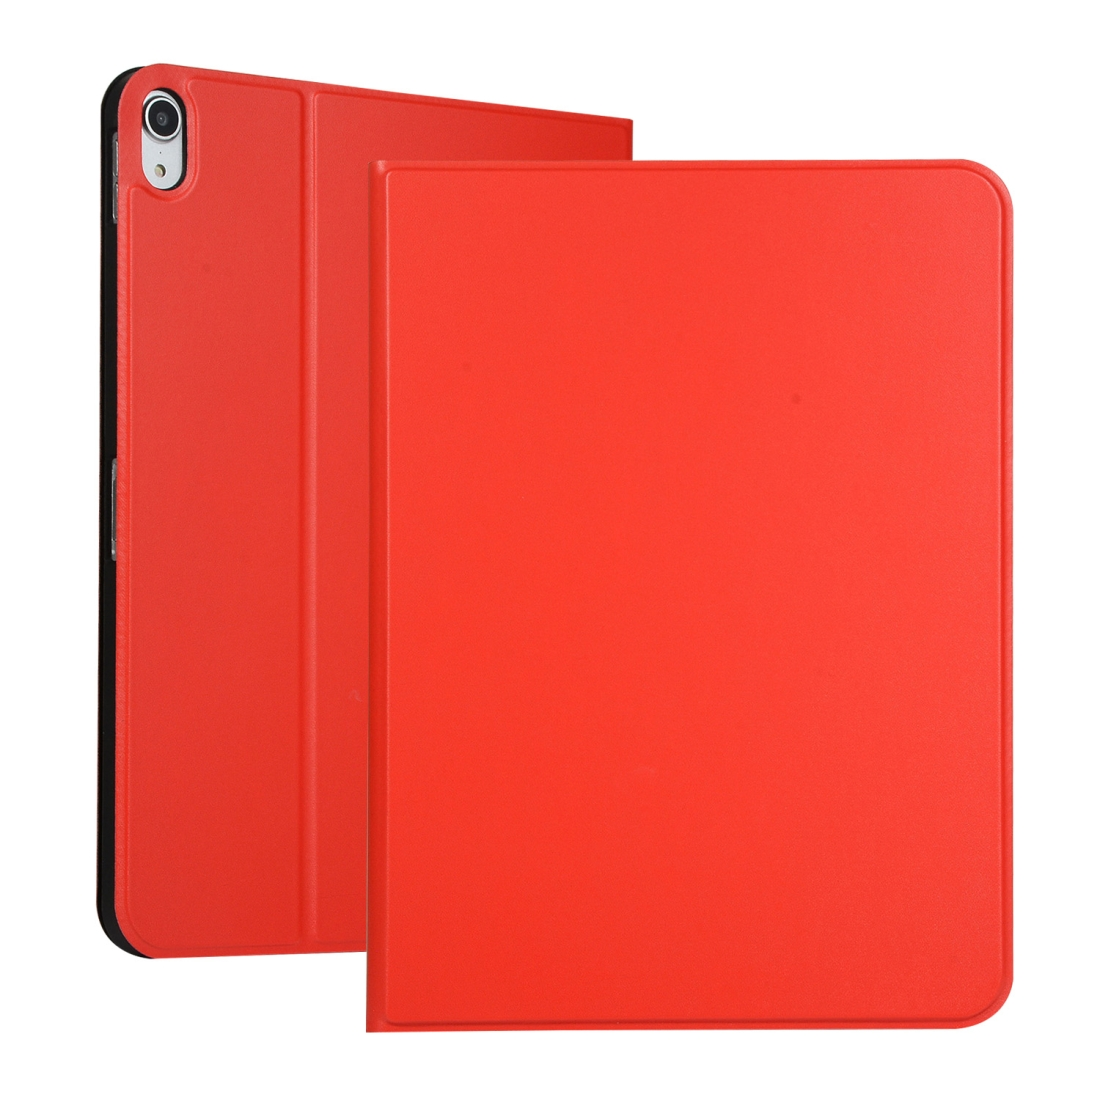 Elastic Leather iPad Pro 11 Case With Auto Sleep, Durable Soft Shell Bottom (Red)